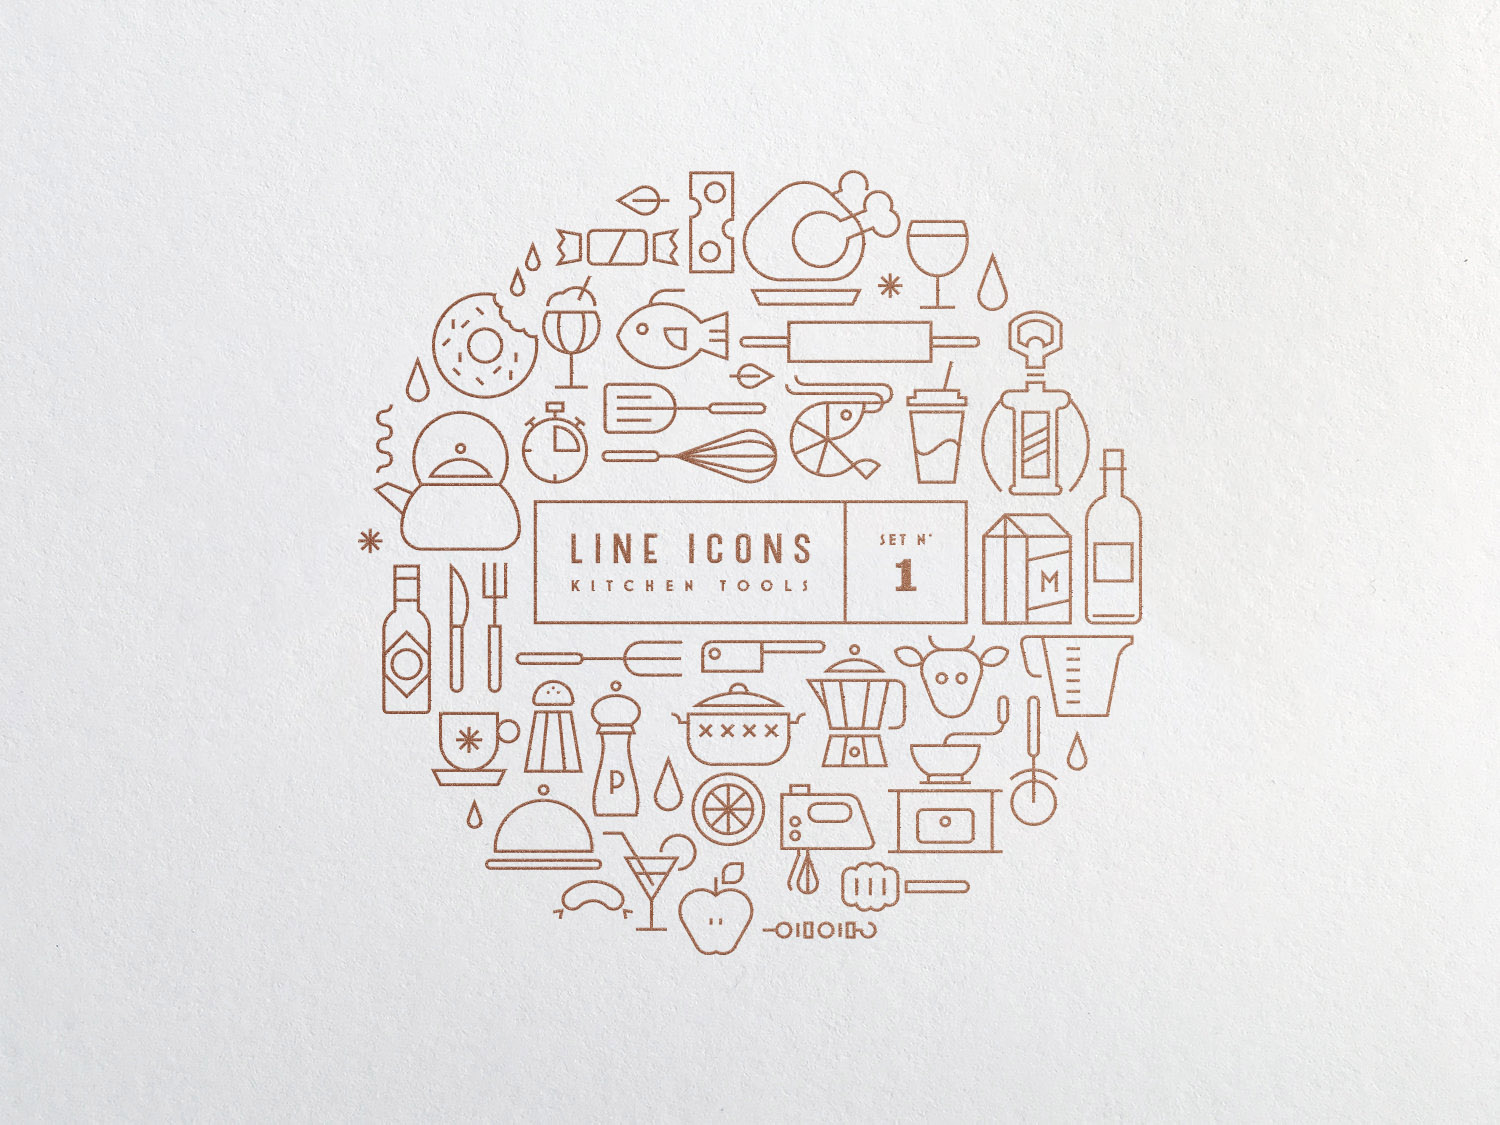 free line icons icon set kitchen tools gravual